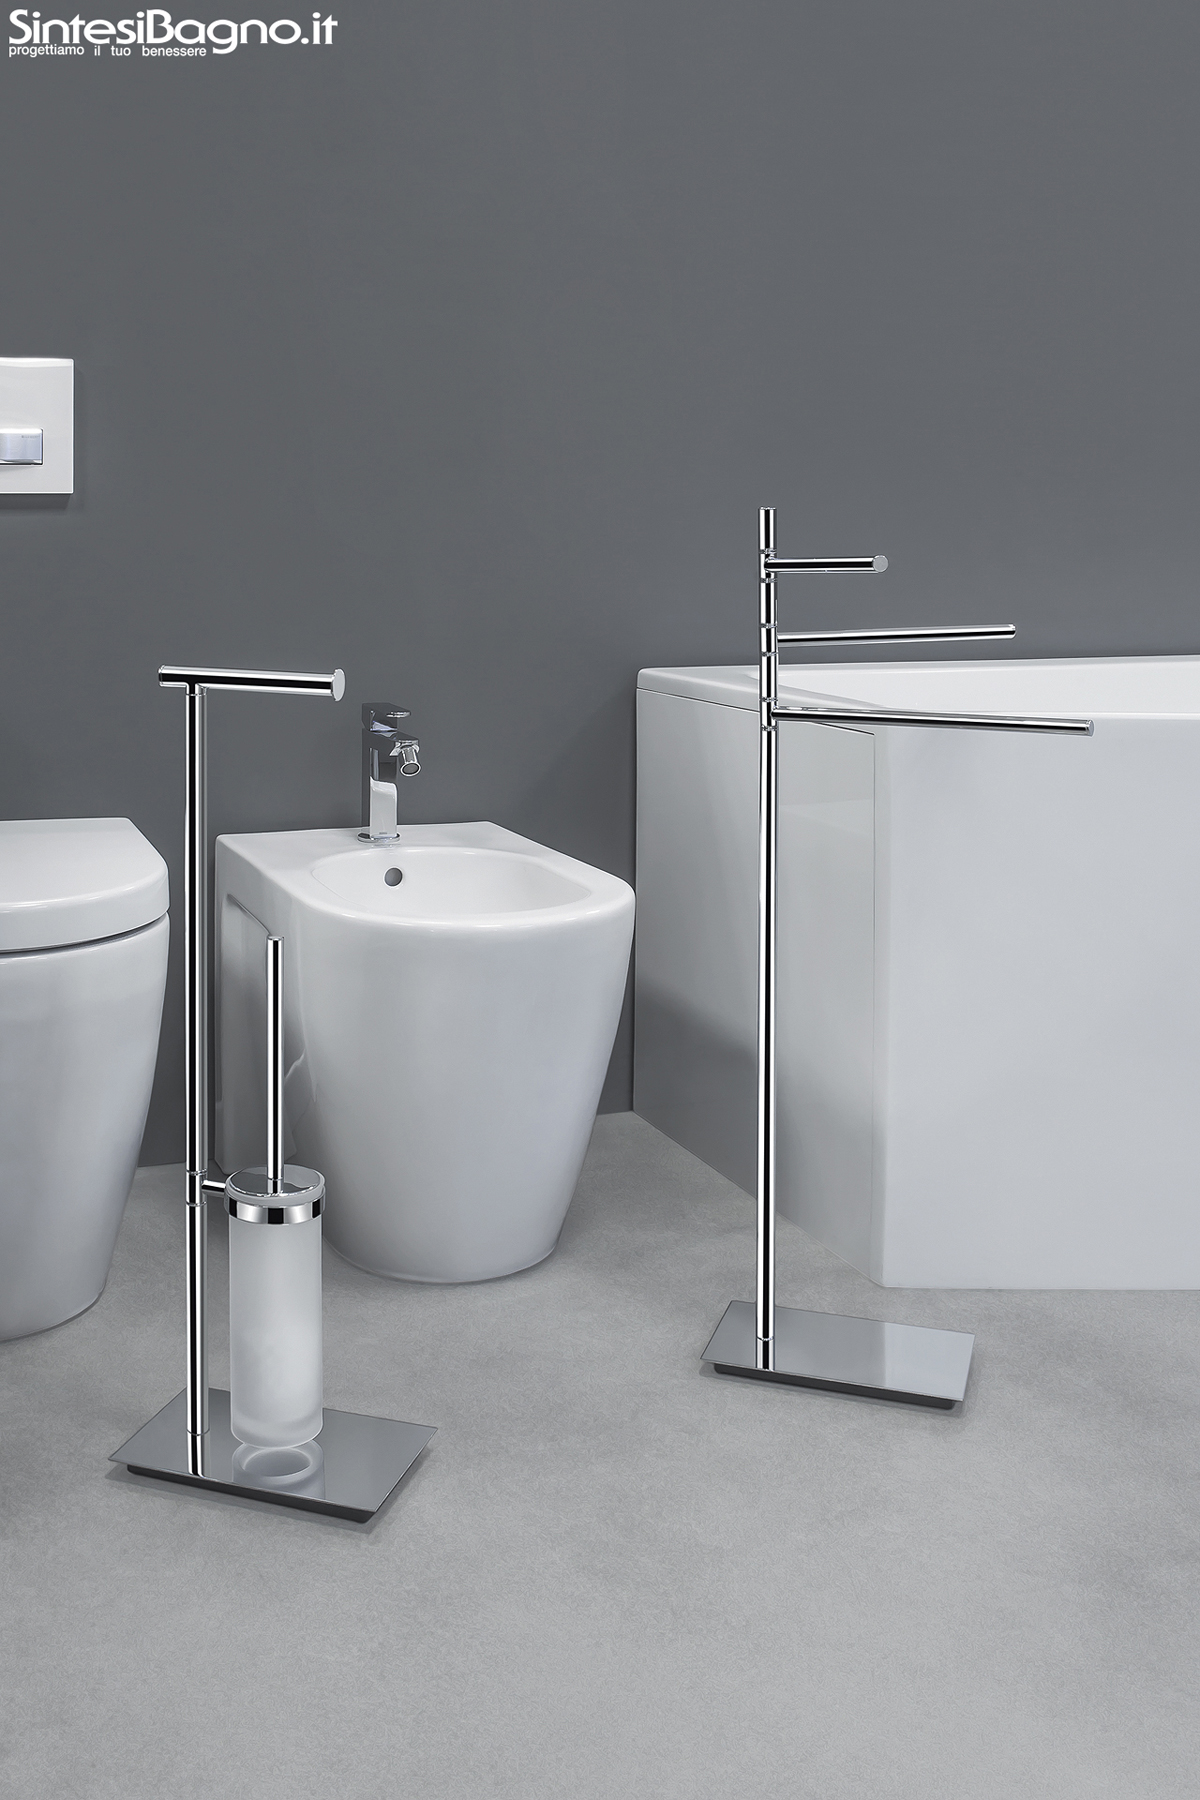 Piantane e colonne serie square di colombo design arredobagno news - Bagni on line ...